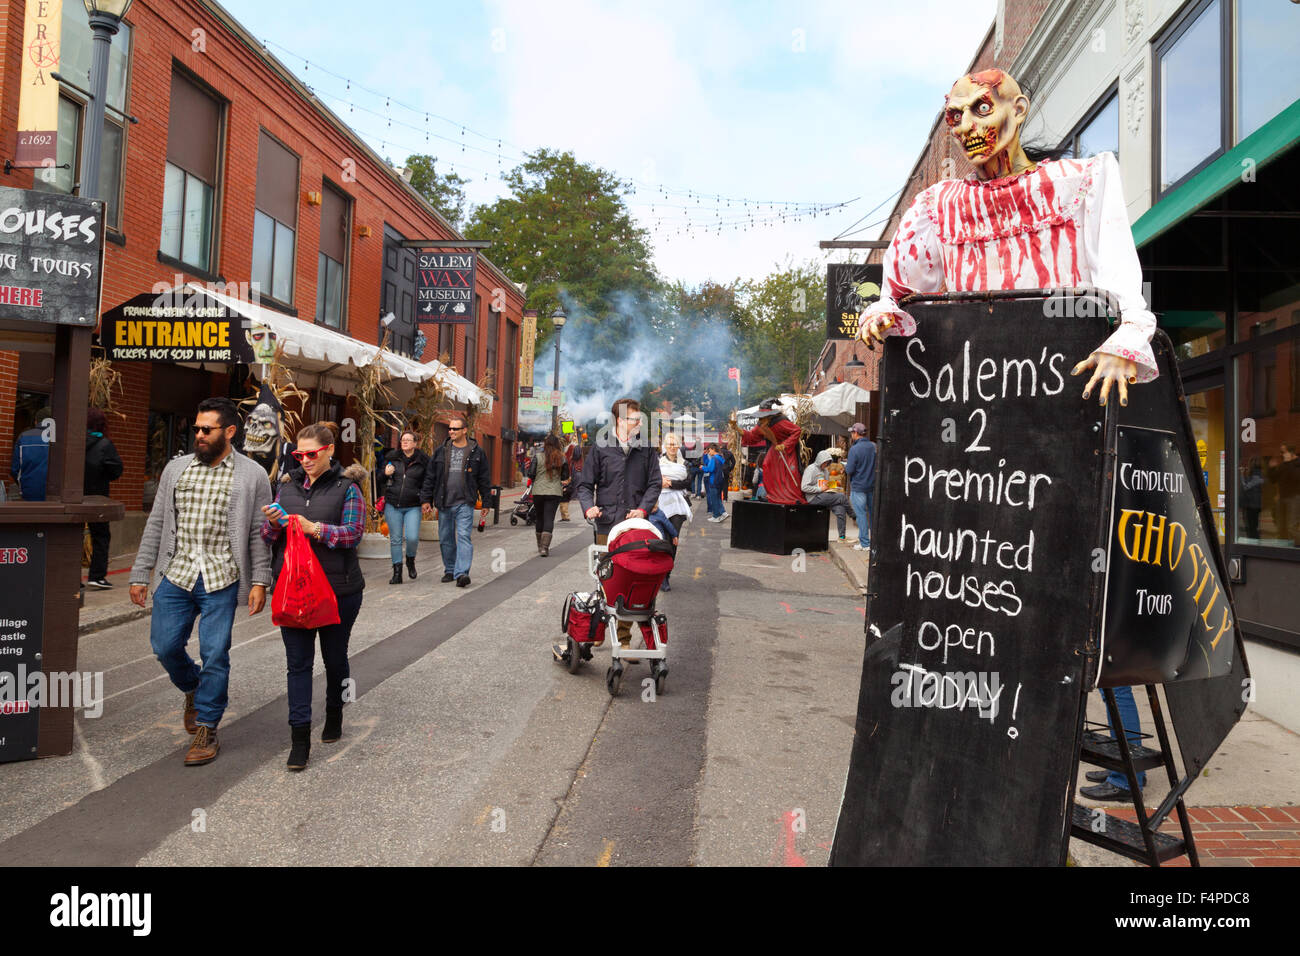 salem massachusetts halloween stock photos & salem massachusetts